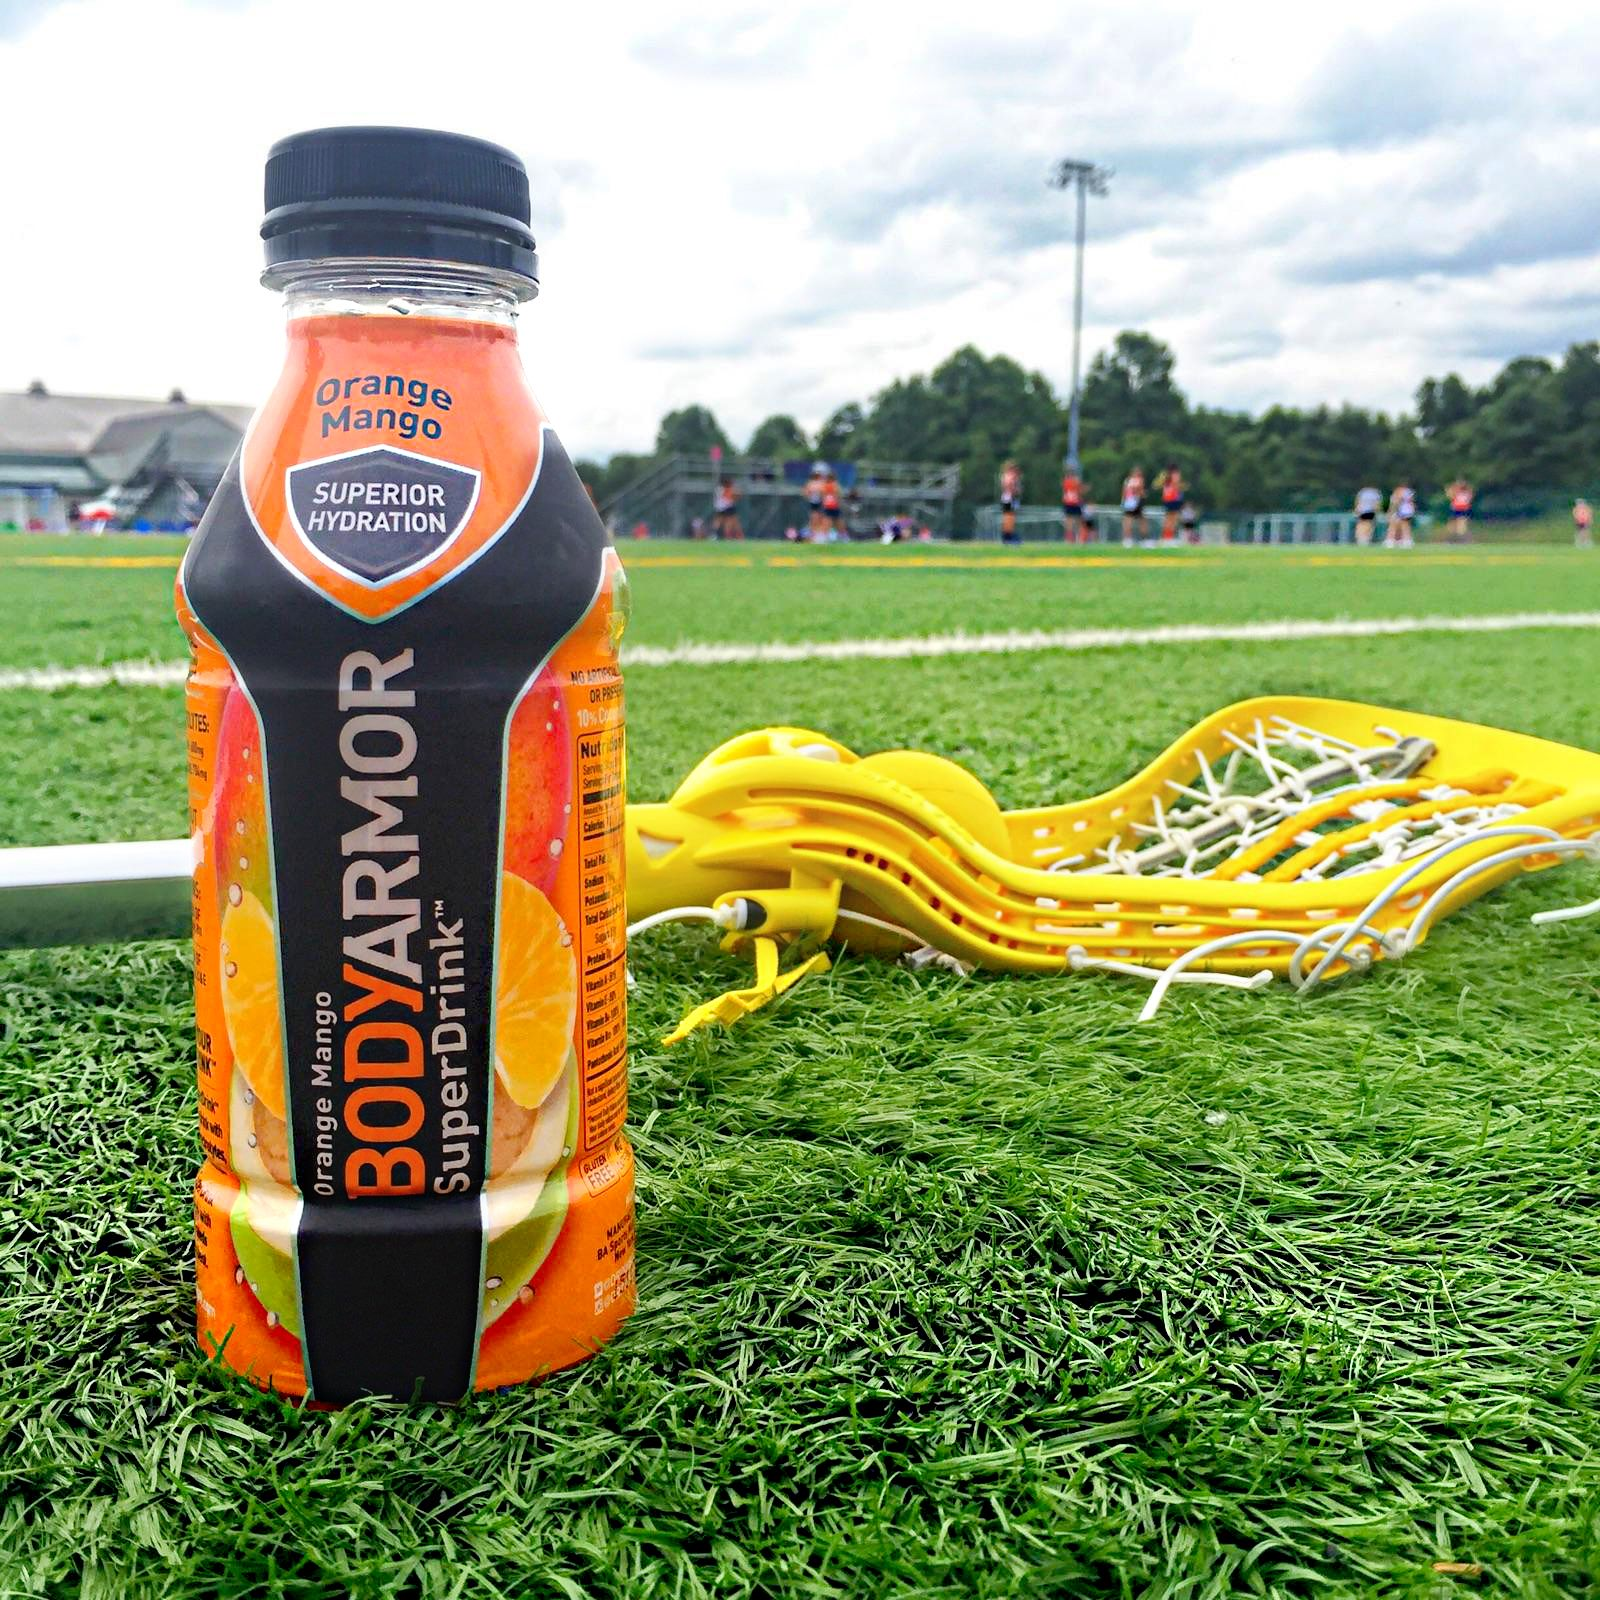 The only way to get my athletes ready for game time. #MyBODYARMORsummer